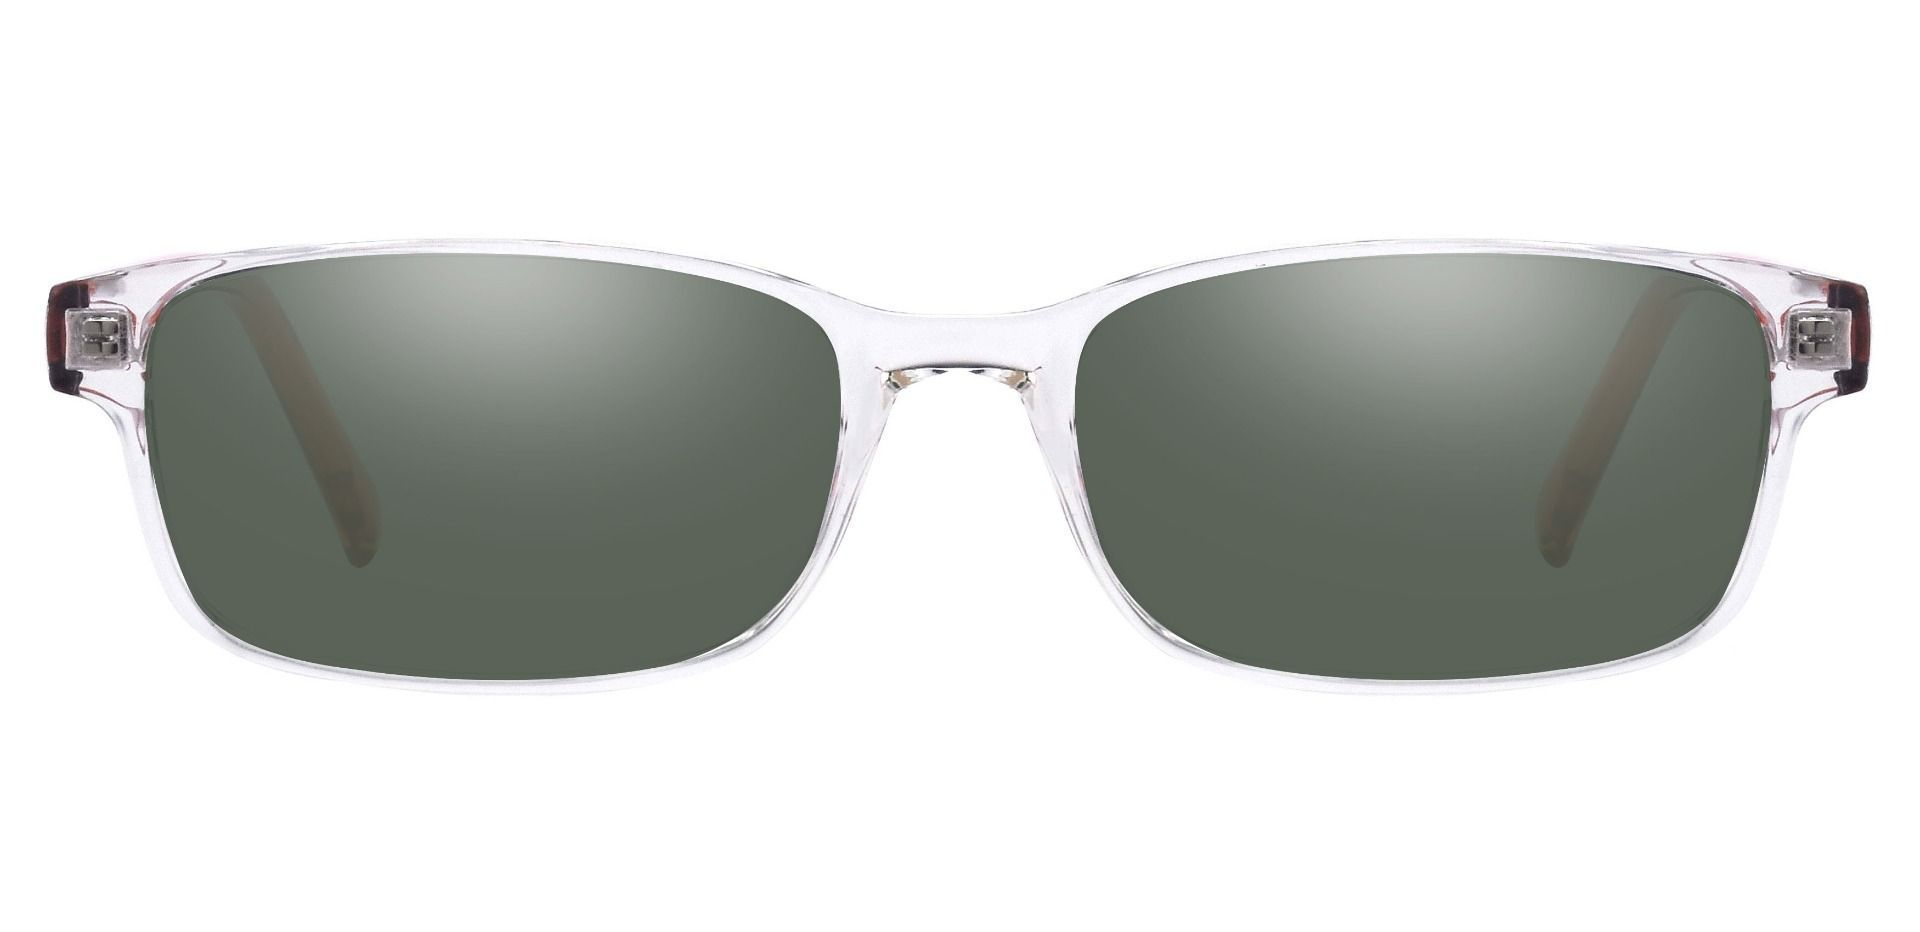 Layton Rectangle Prescription Sunglasses - Clear Frame With Green Lenses